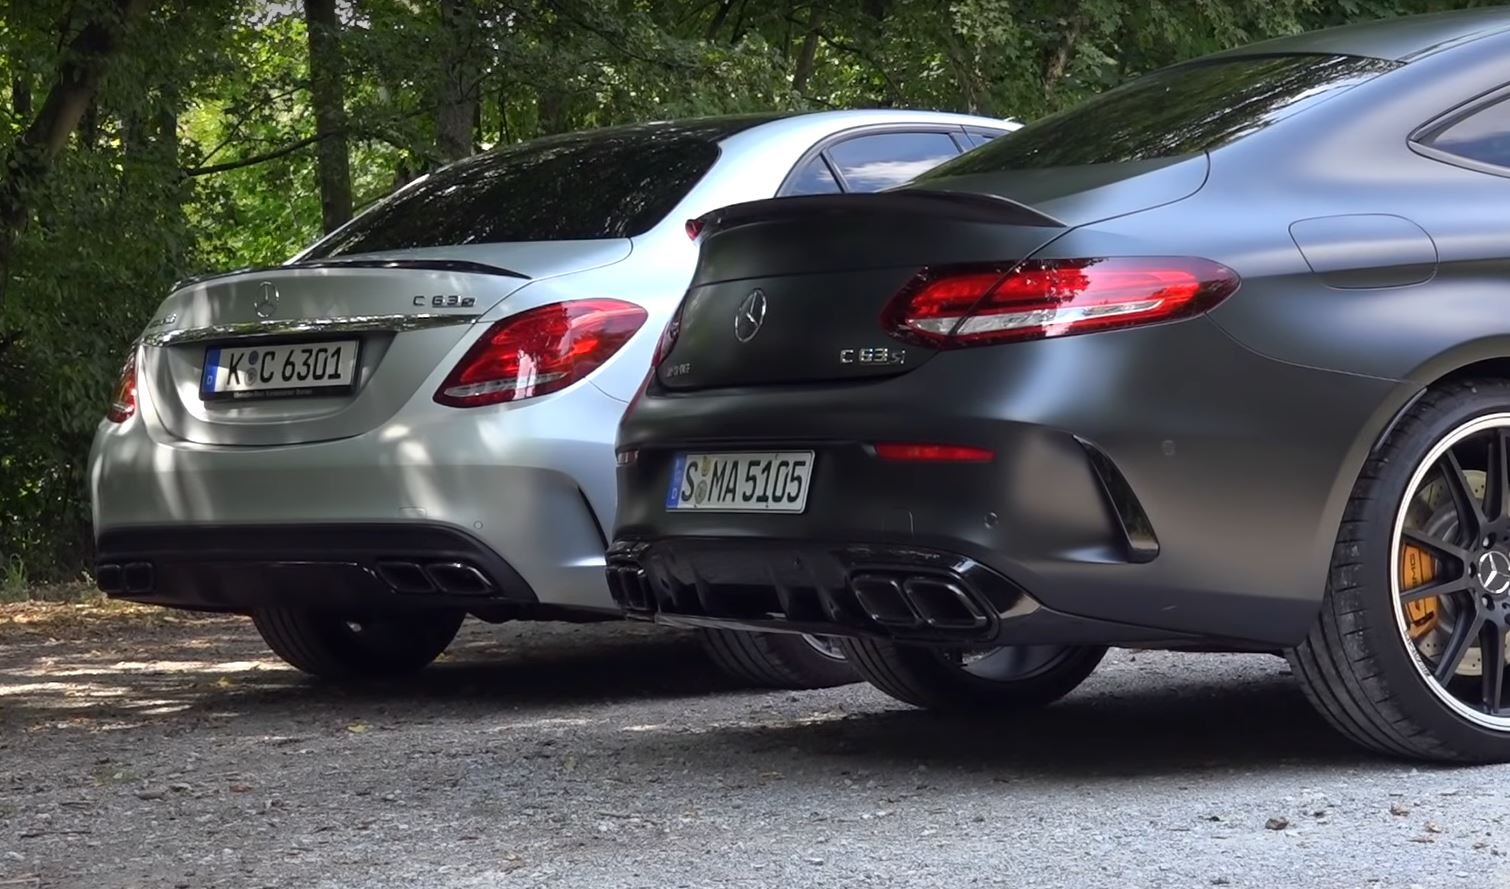 2019 Mercedes-AMG C63 S Coupe vs  2018 C63 S Sedan Exhaust